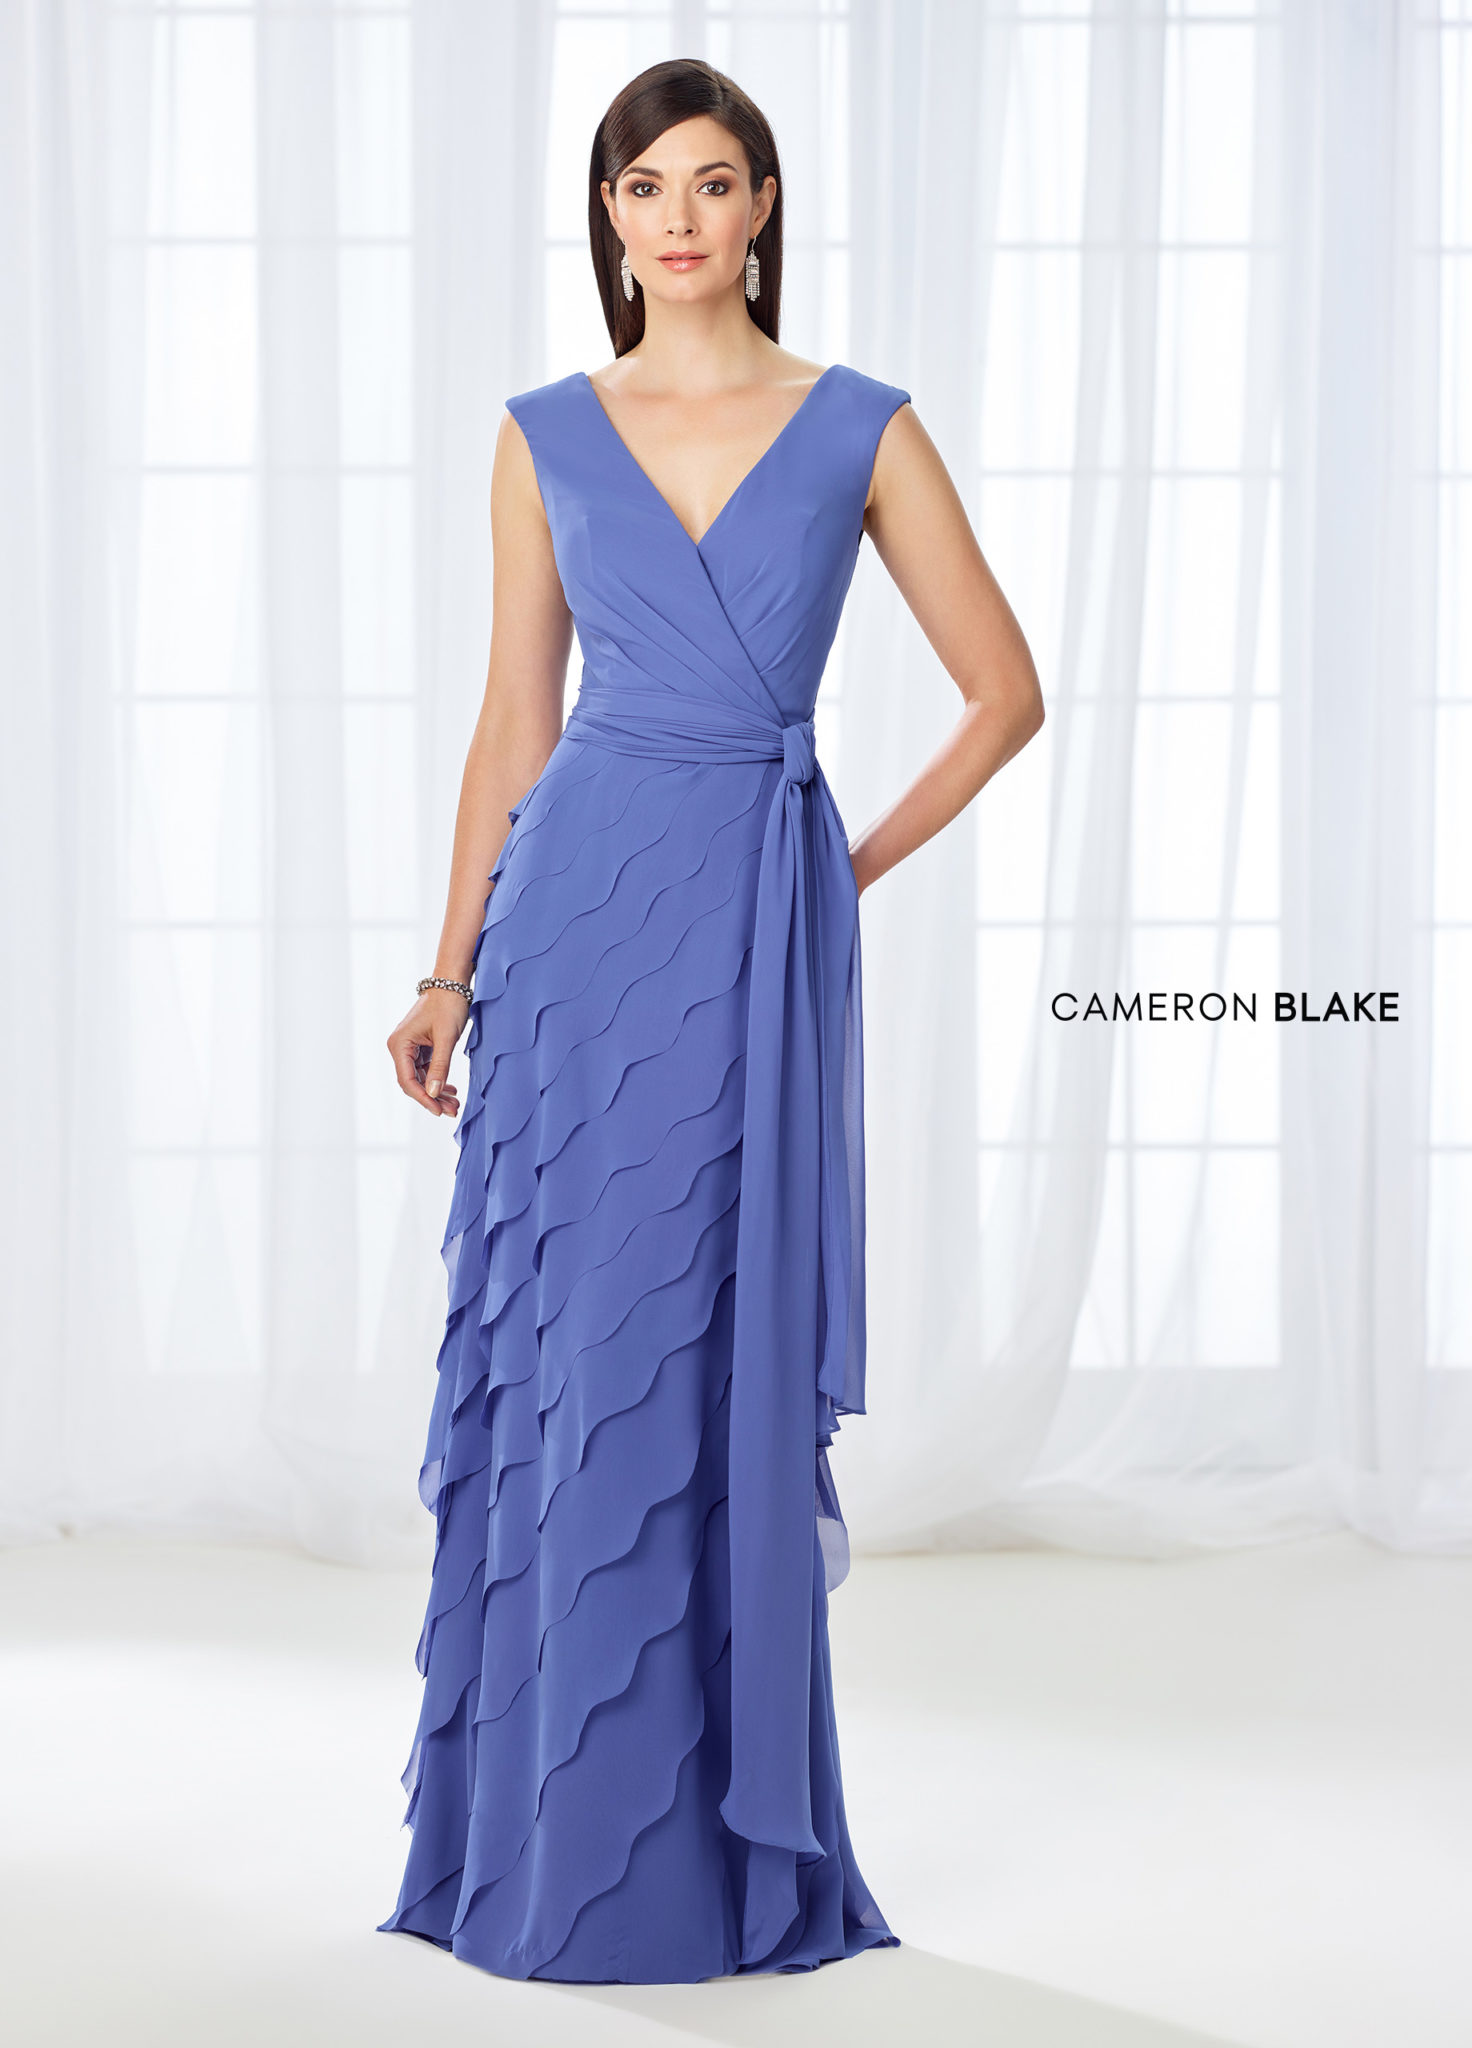 Cameron Blake Mother of the Bride gowns and dresses